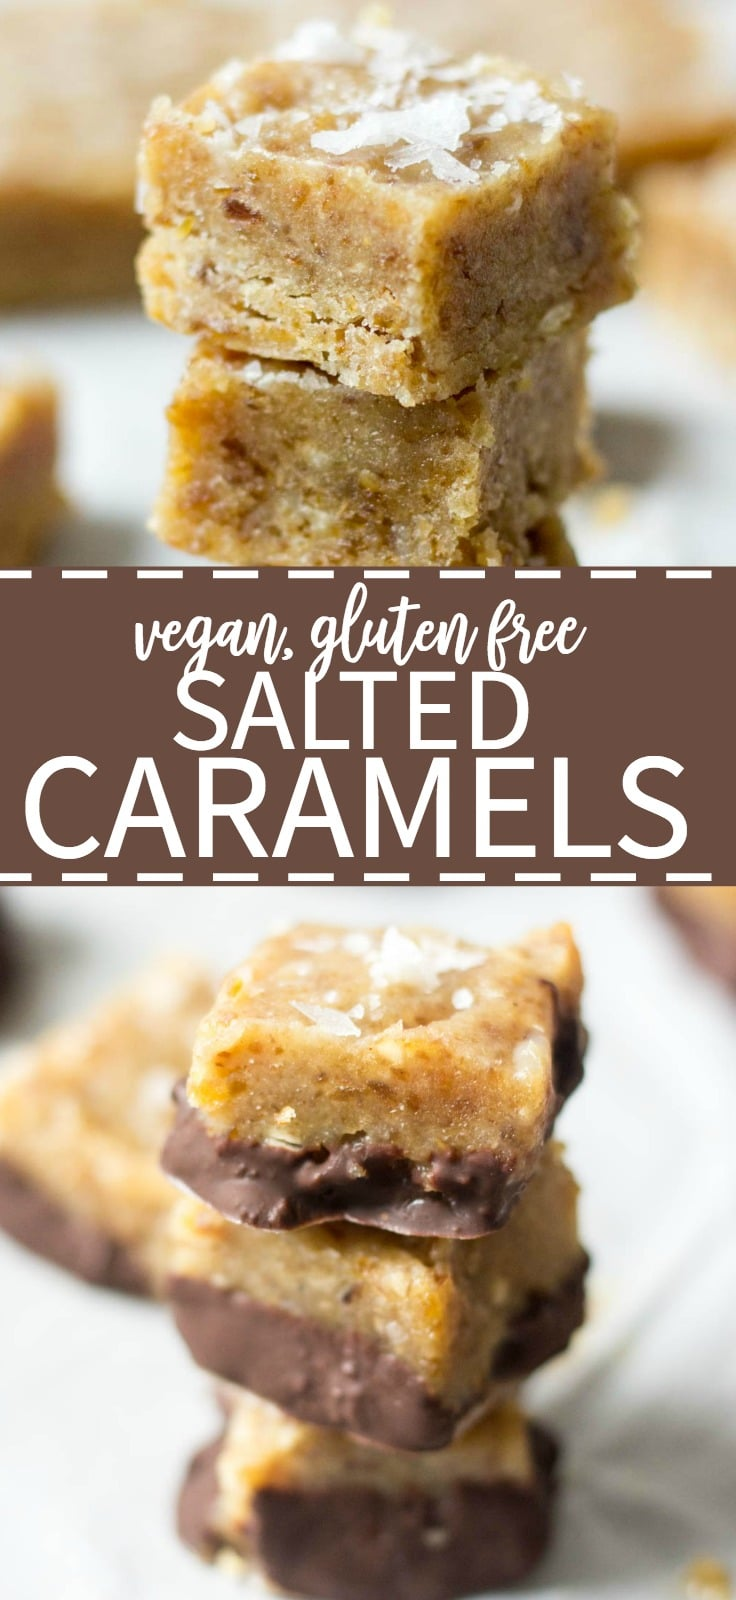 You will be amazed by these healthy caramels! They're made with tahini, dates and coconut oil. Blend all of the ingredients in the food process and freeze in a loaf pan. Sprinkle with sea salt and dunk them in dark chocolate. These easy healthy salted caramels will be your go to dessert recipe.